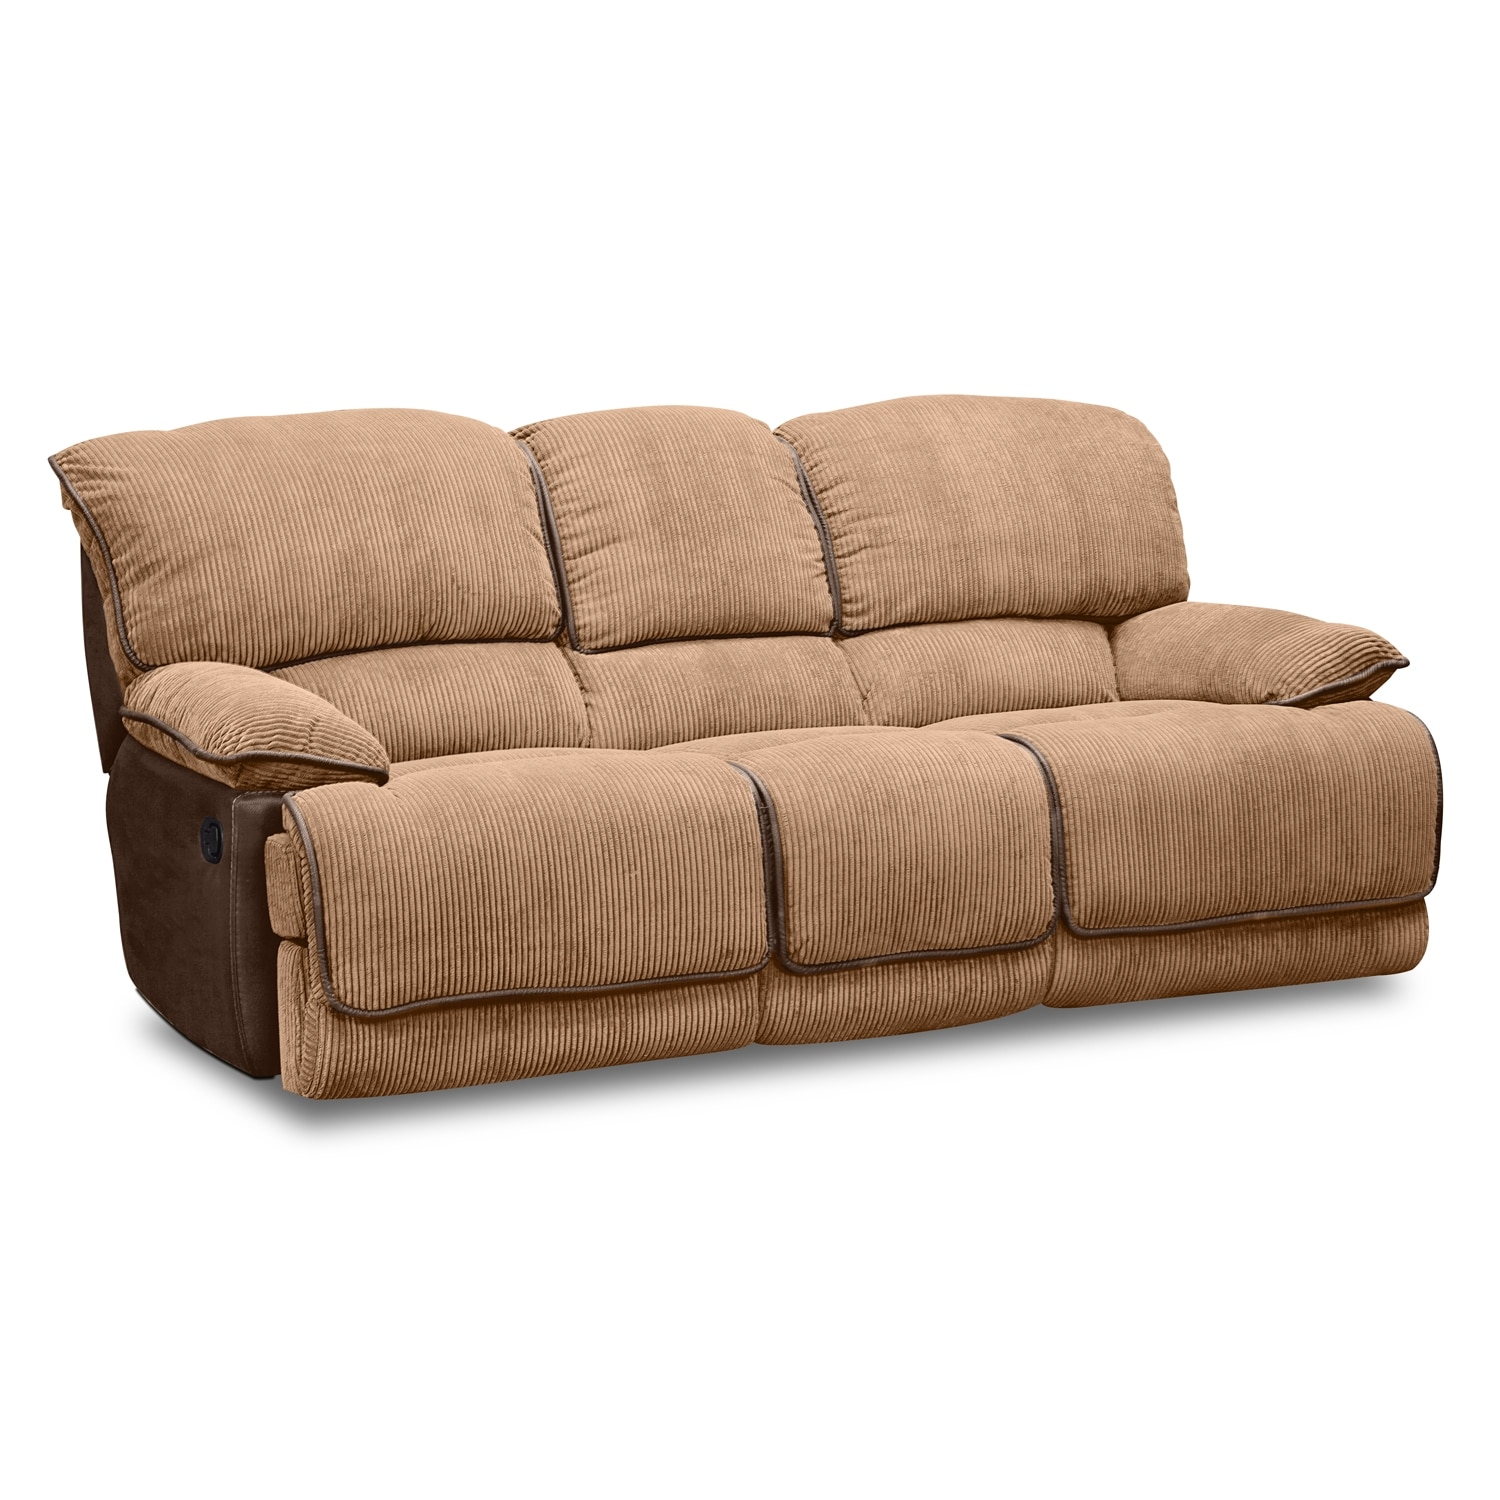 Laguna dual reclining sofa camel american signature for Signature furniture